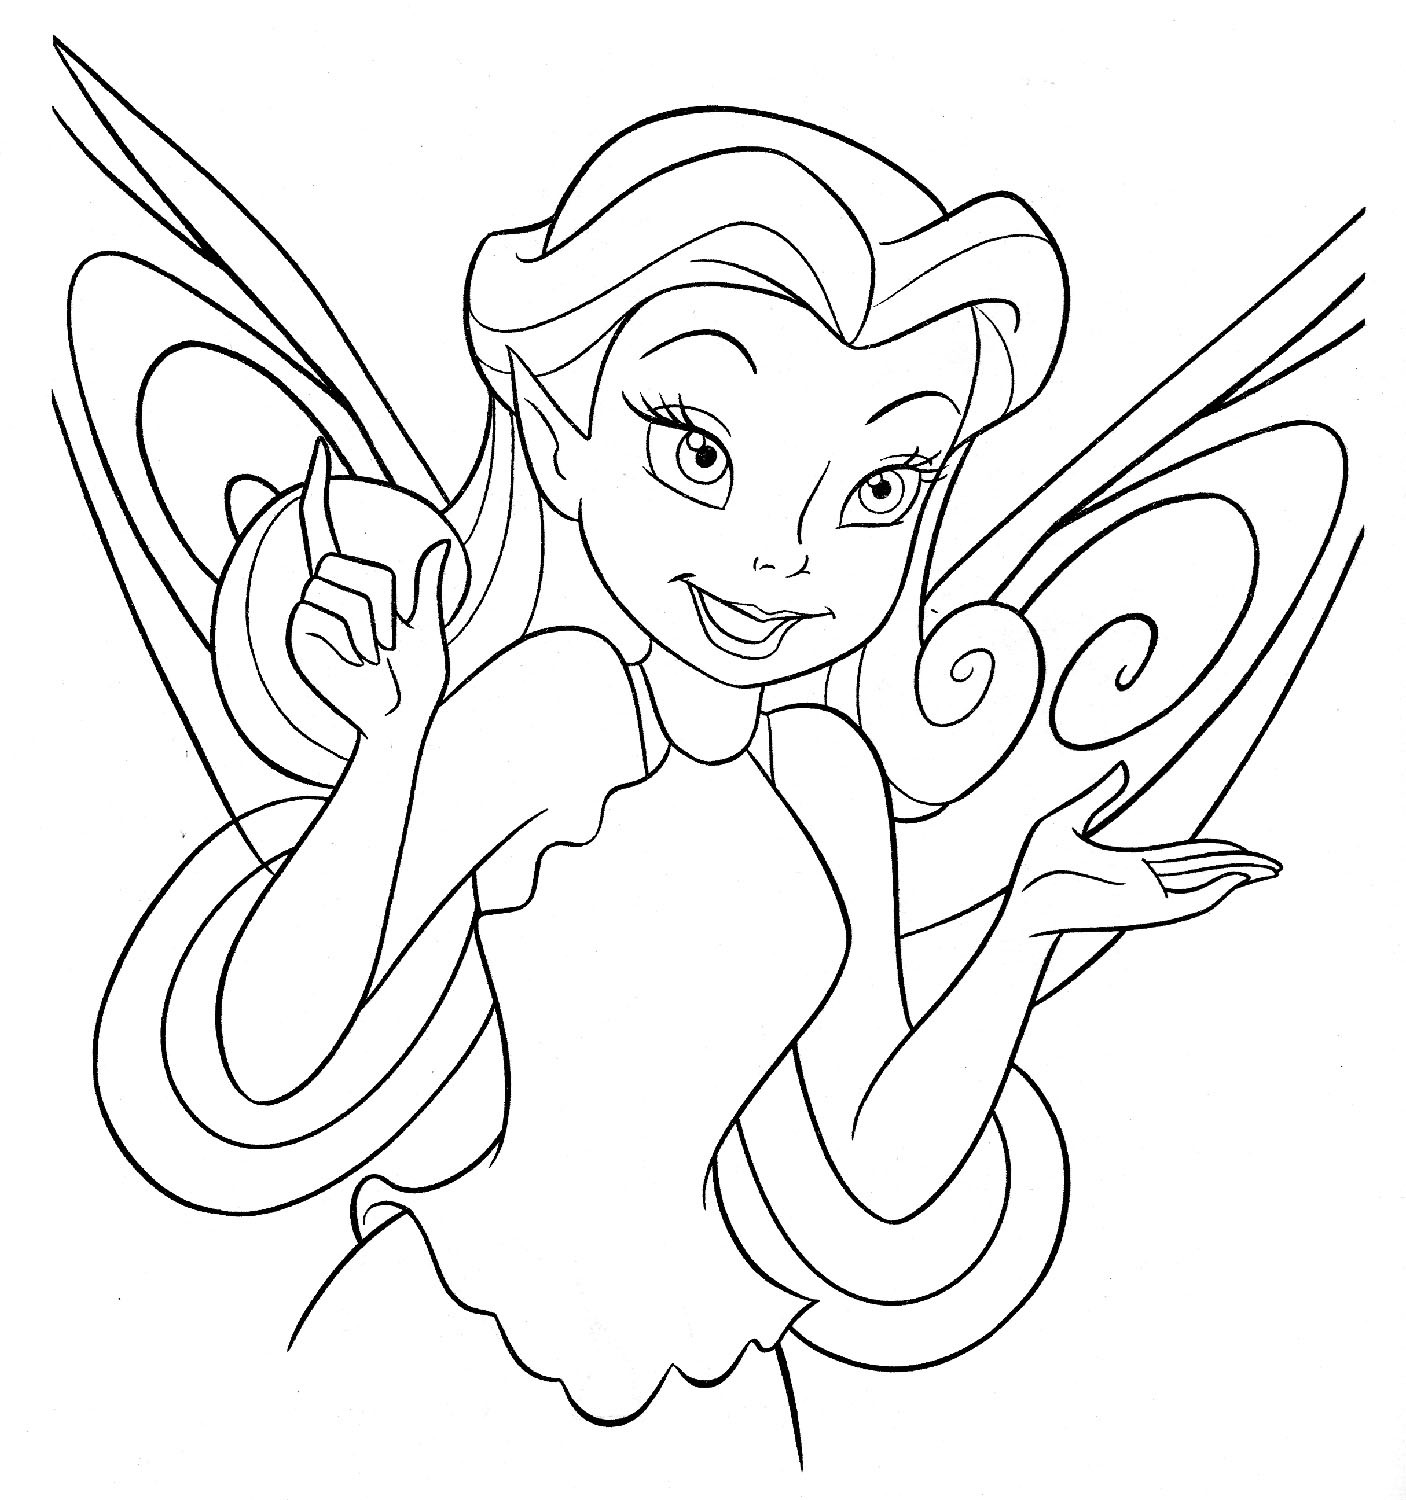 Best ideas about Coloring Pages For Girls Fairies . Save or Pin 36 Disney Tinkerbell coloring pages for Girls Now.